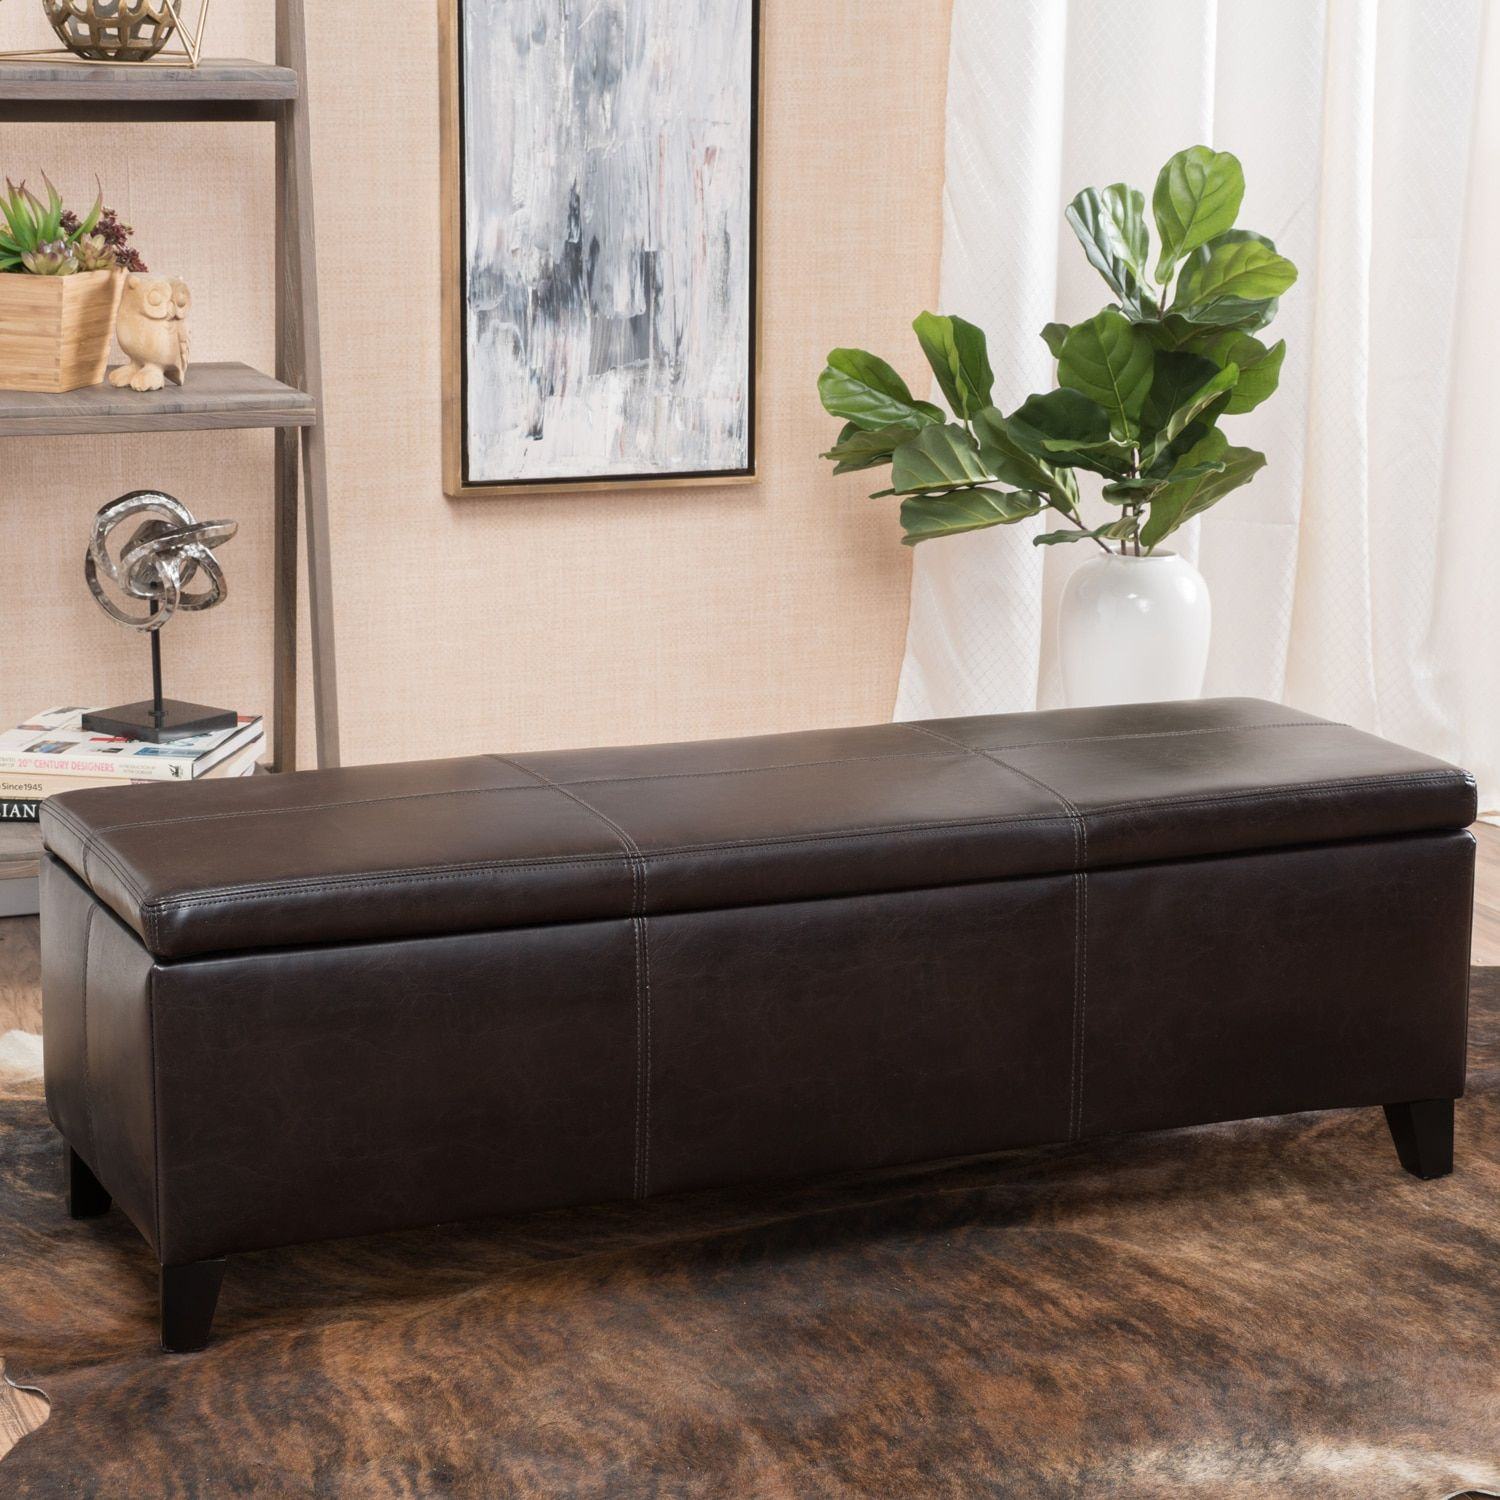 Awesome Brianna Brown Faux Leather Storage Ottoman Products Pabps2019 Chair Design Images Pabps2019Com